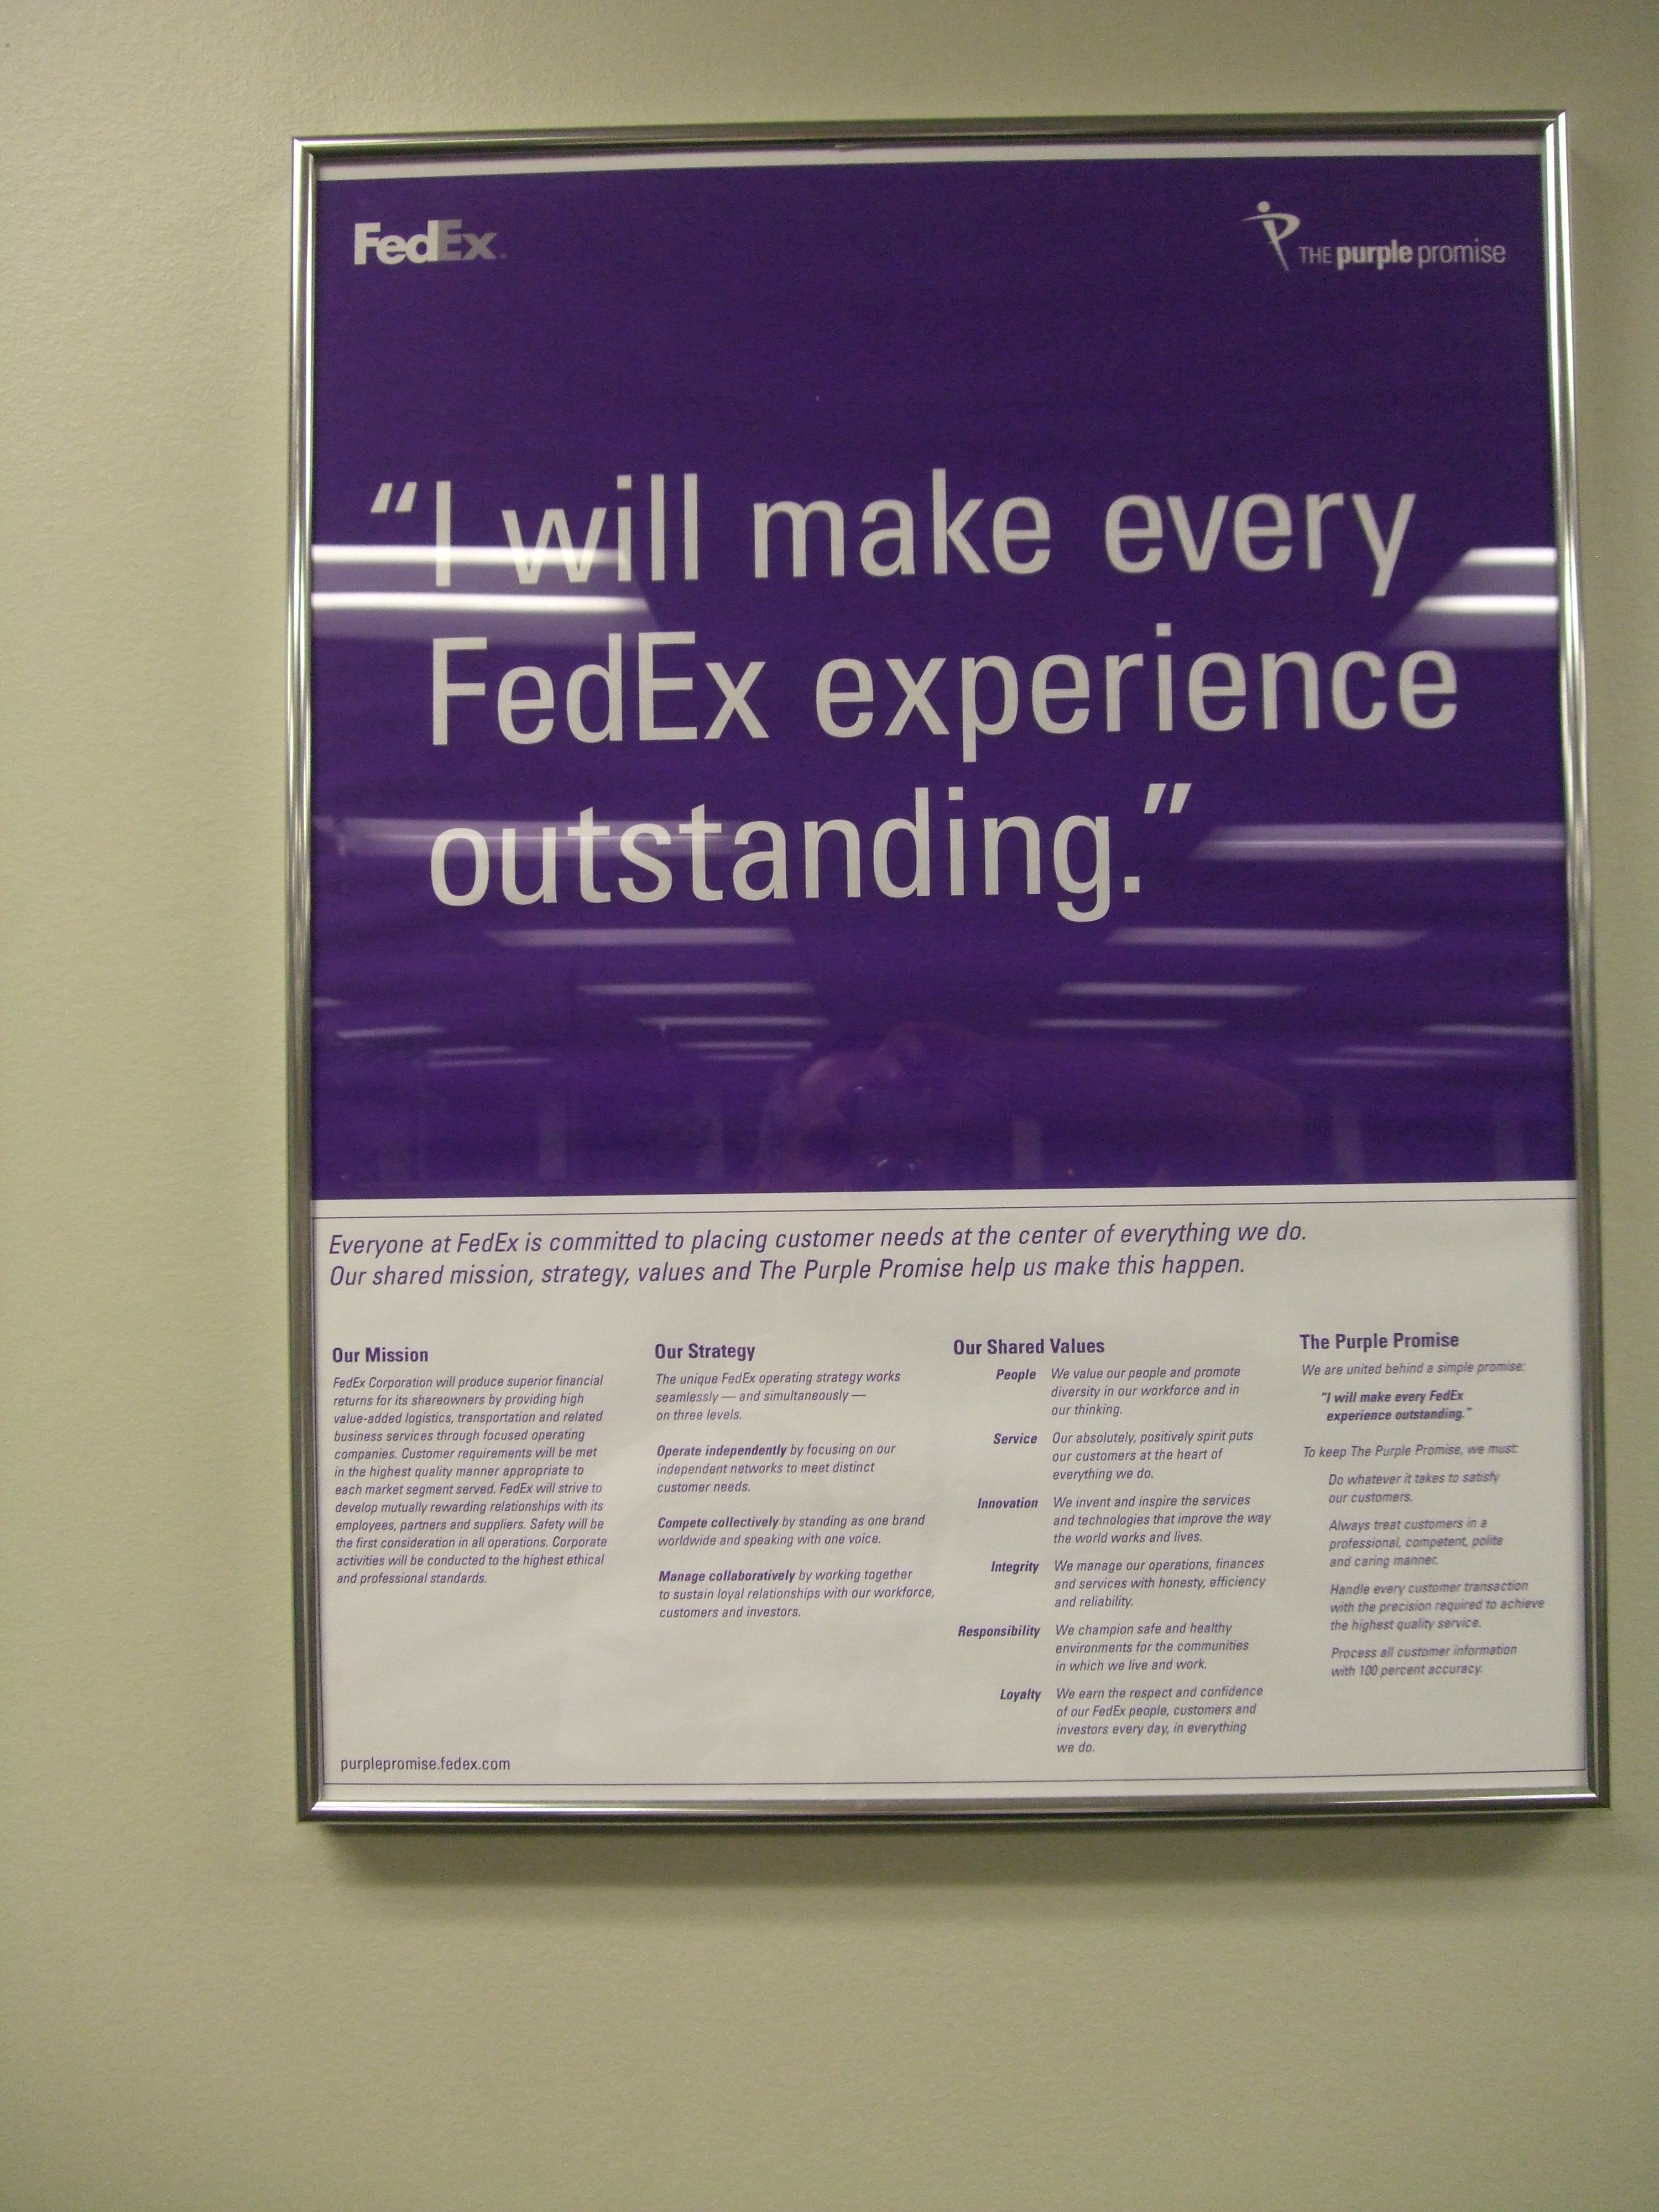 FedEx Freight slogan. (With images) Slogan, Mission